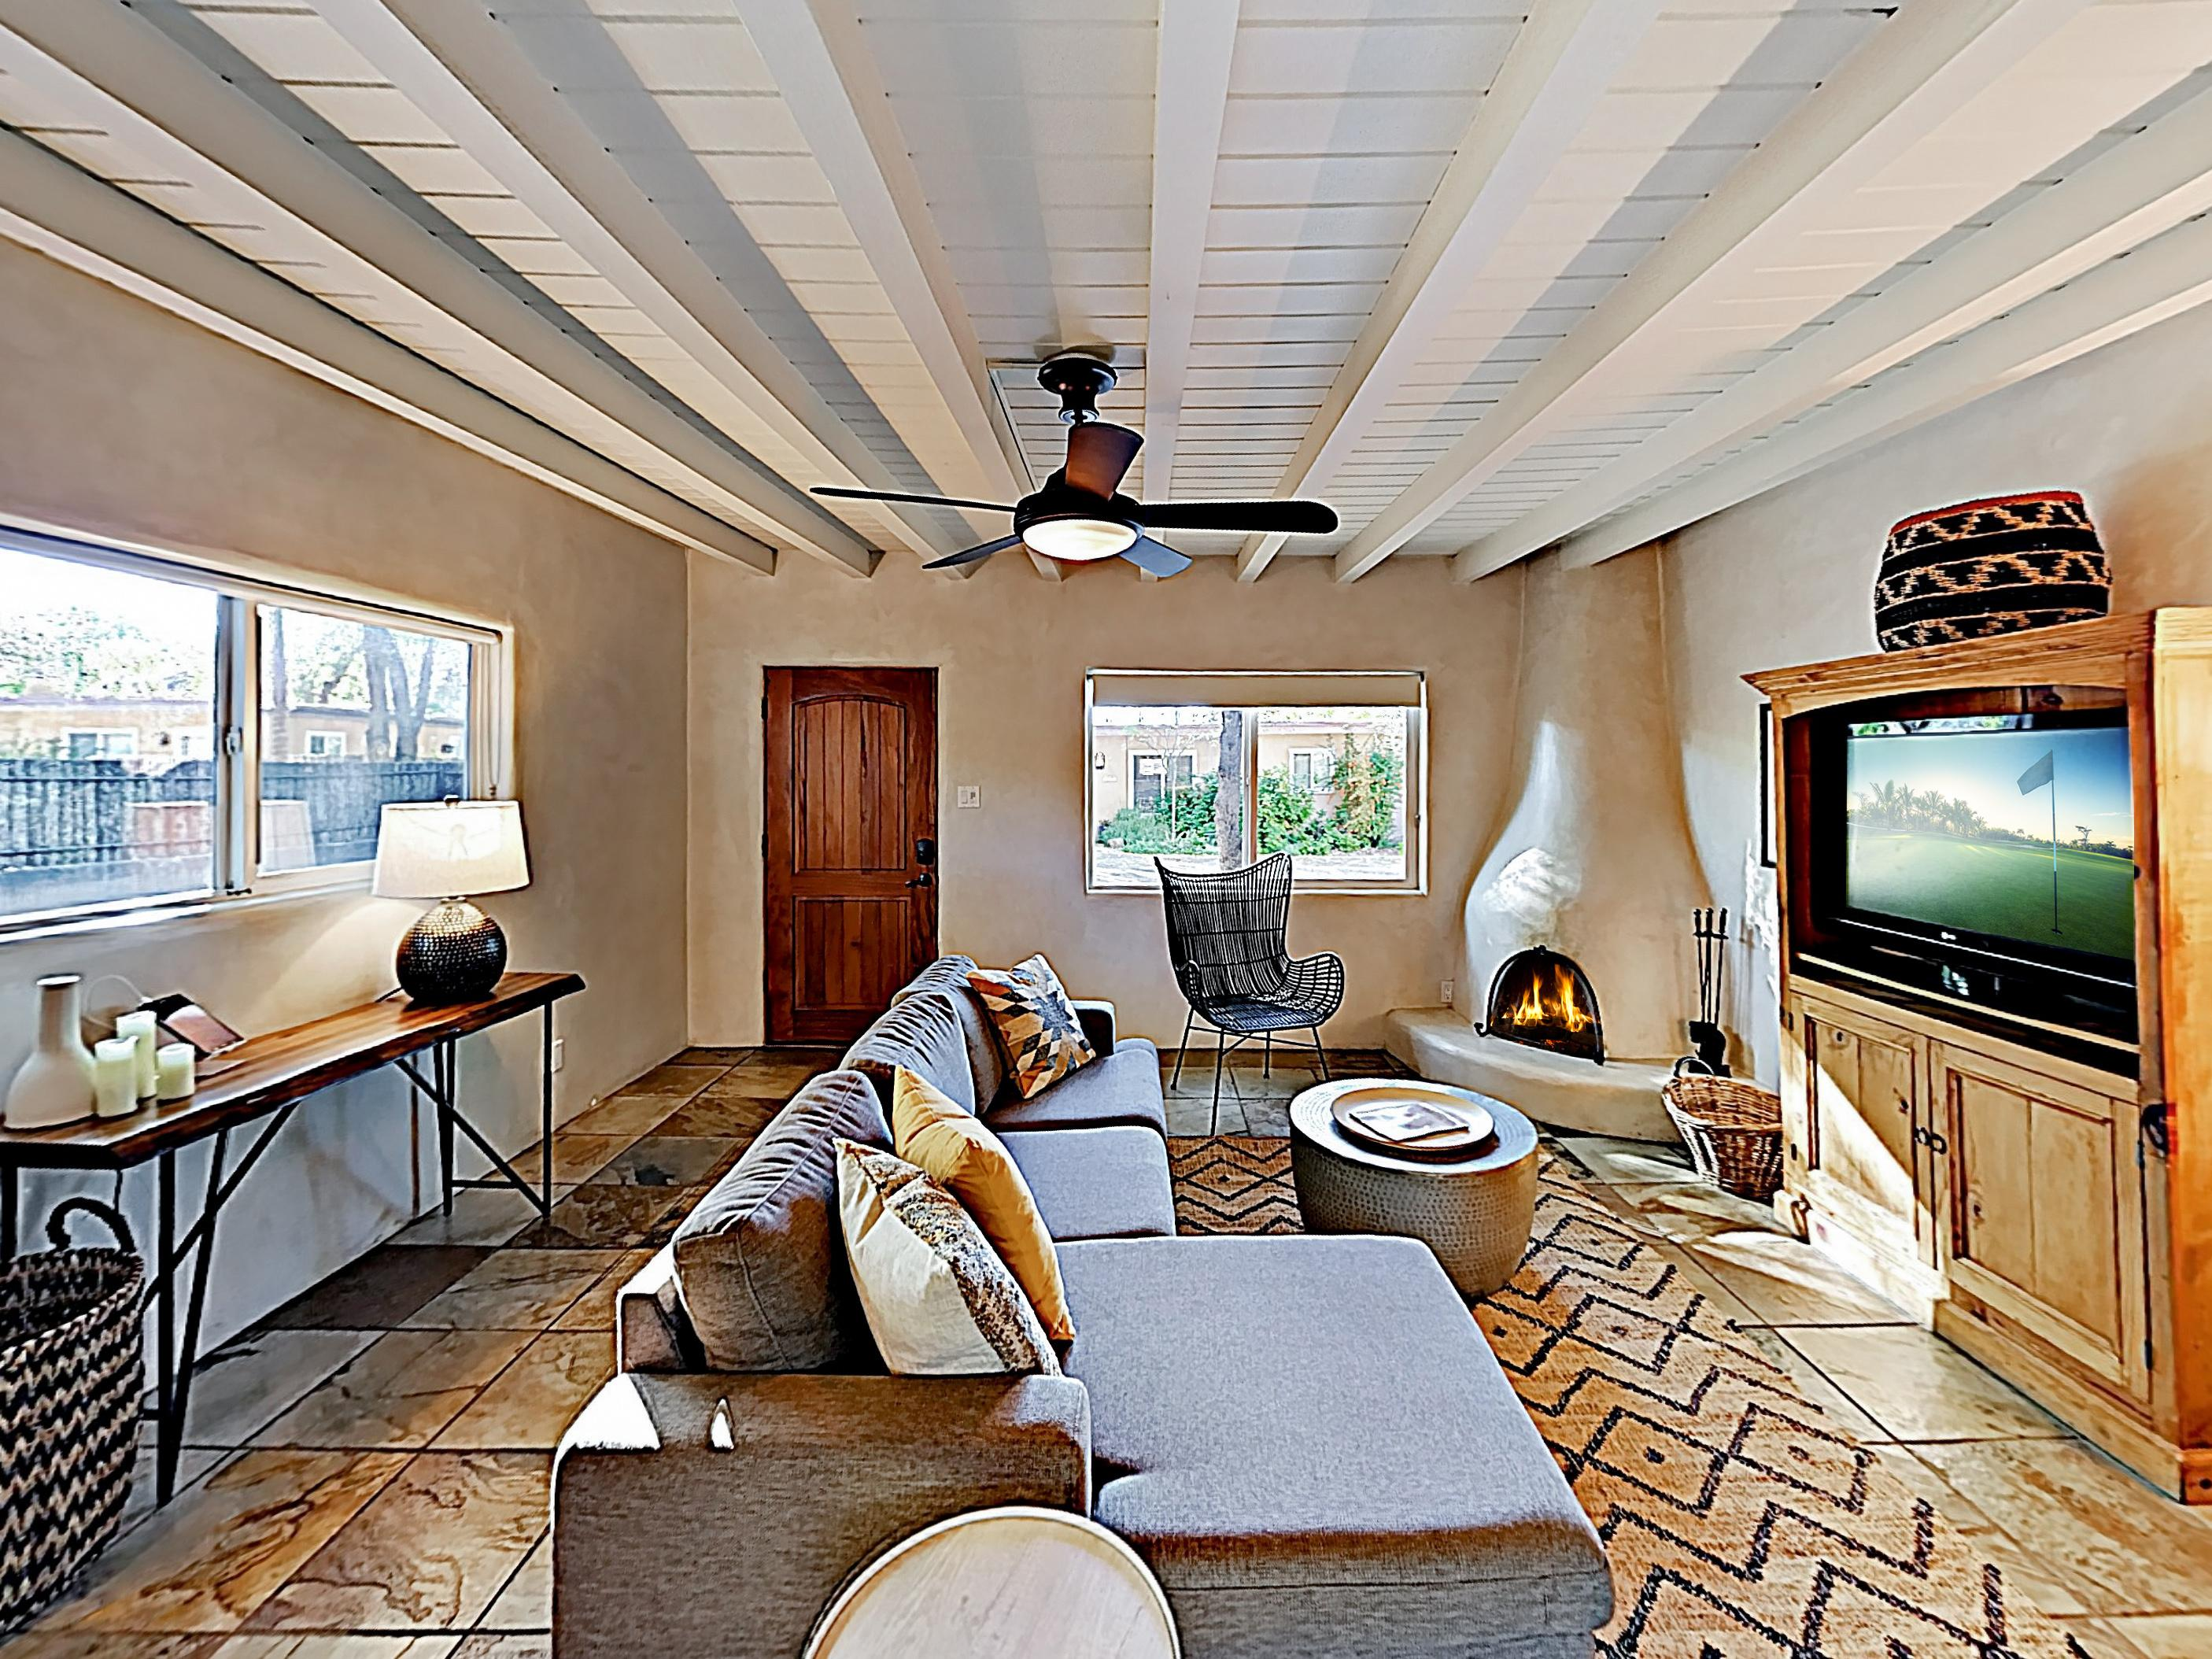 Welcome to Santa Fe! This condo is professionally managed by TurnKey Vacation Rentals.